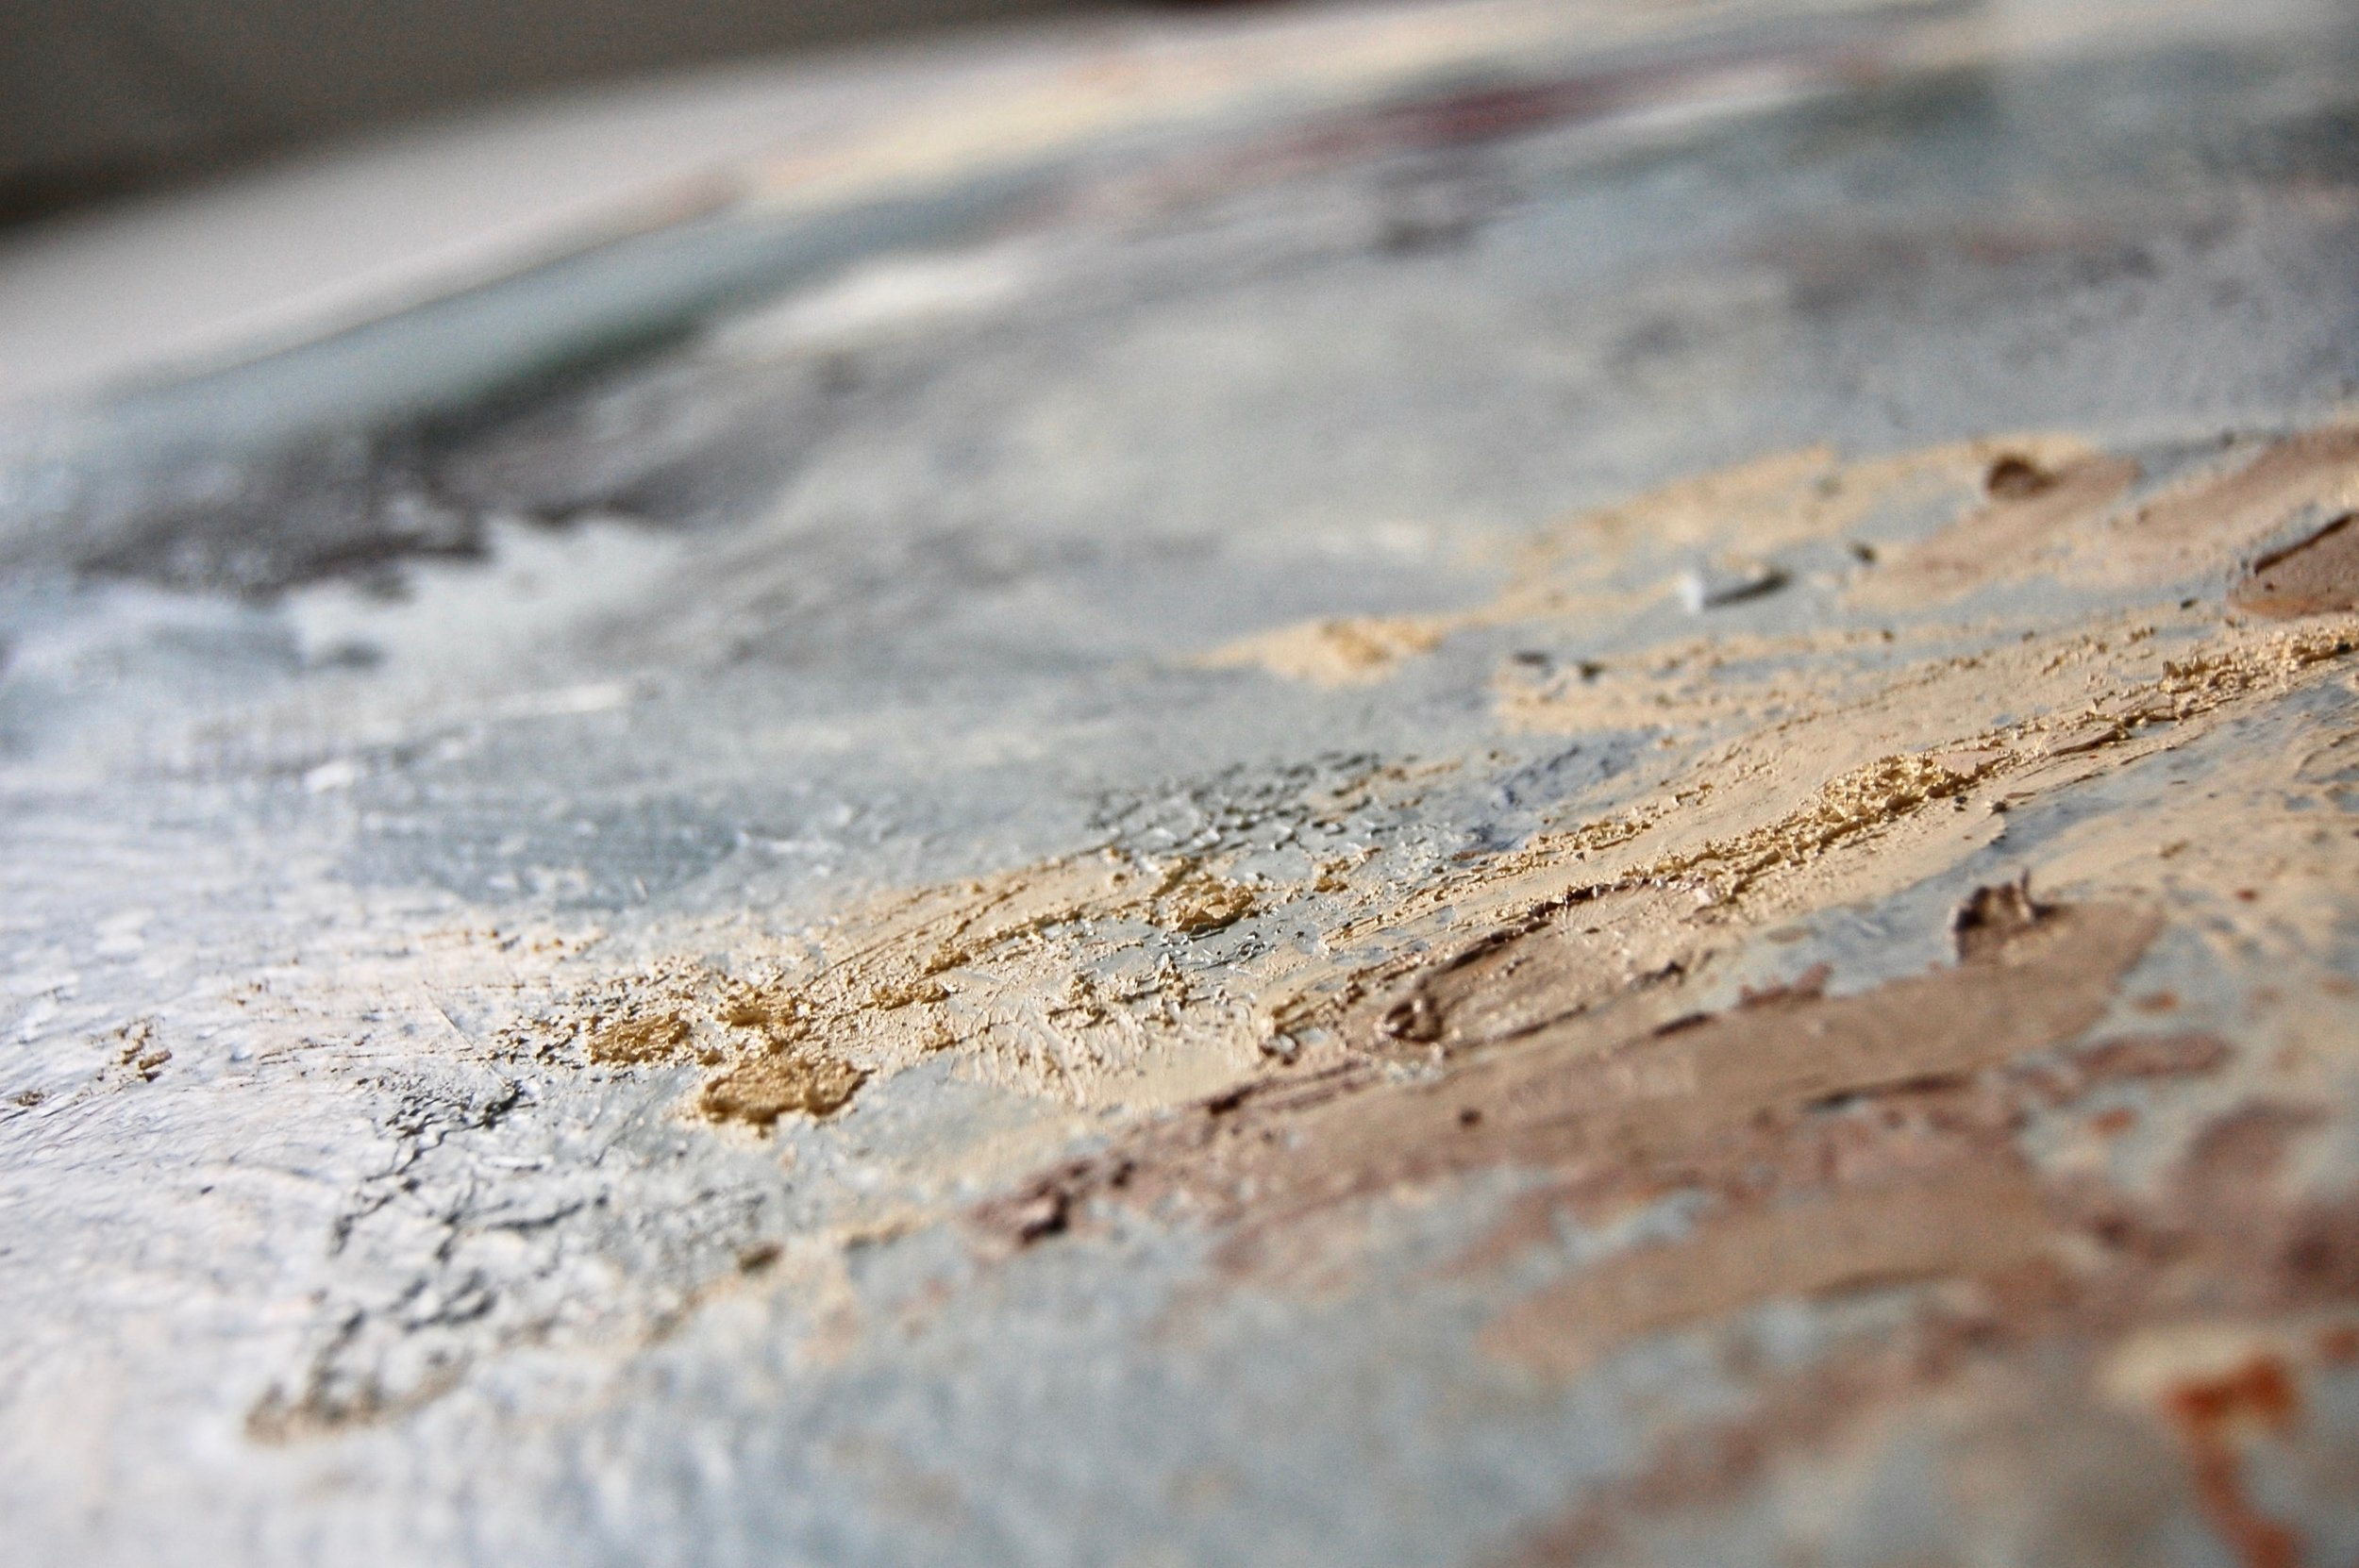 Becoming_Page_ink,oil,oilstick on paper_detail4_LoRes.jpg